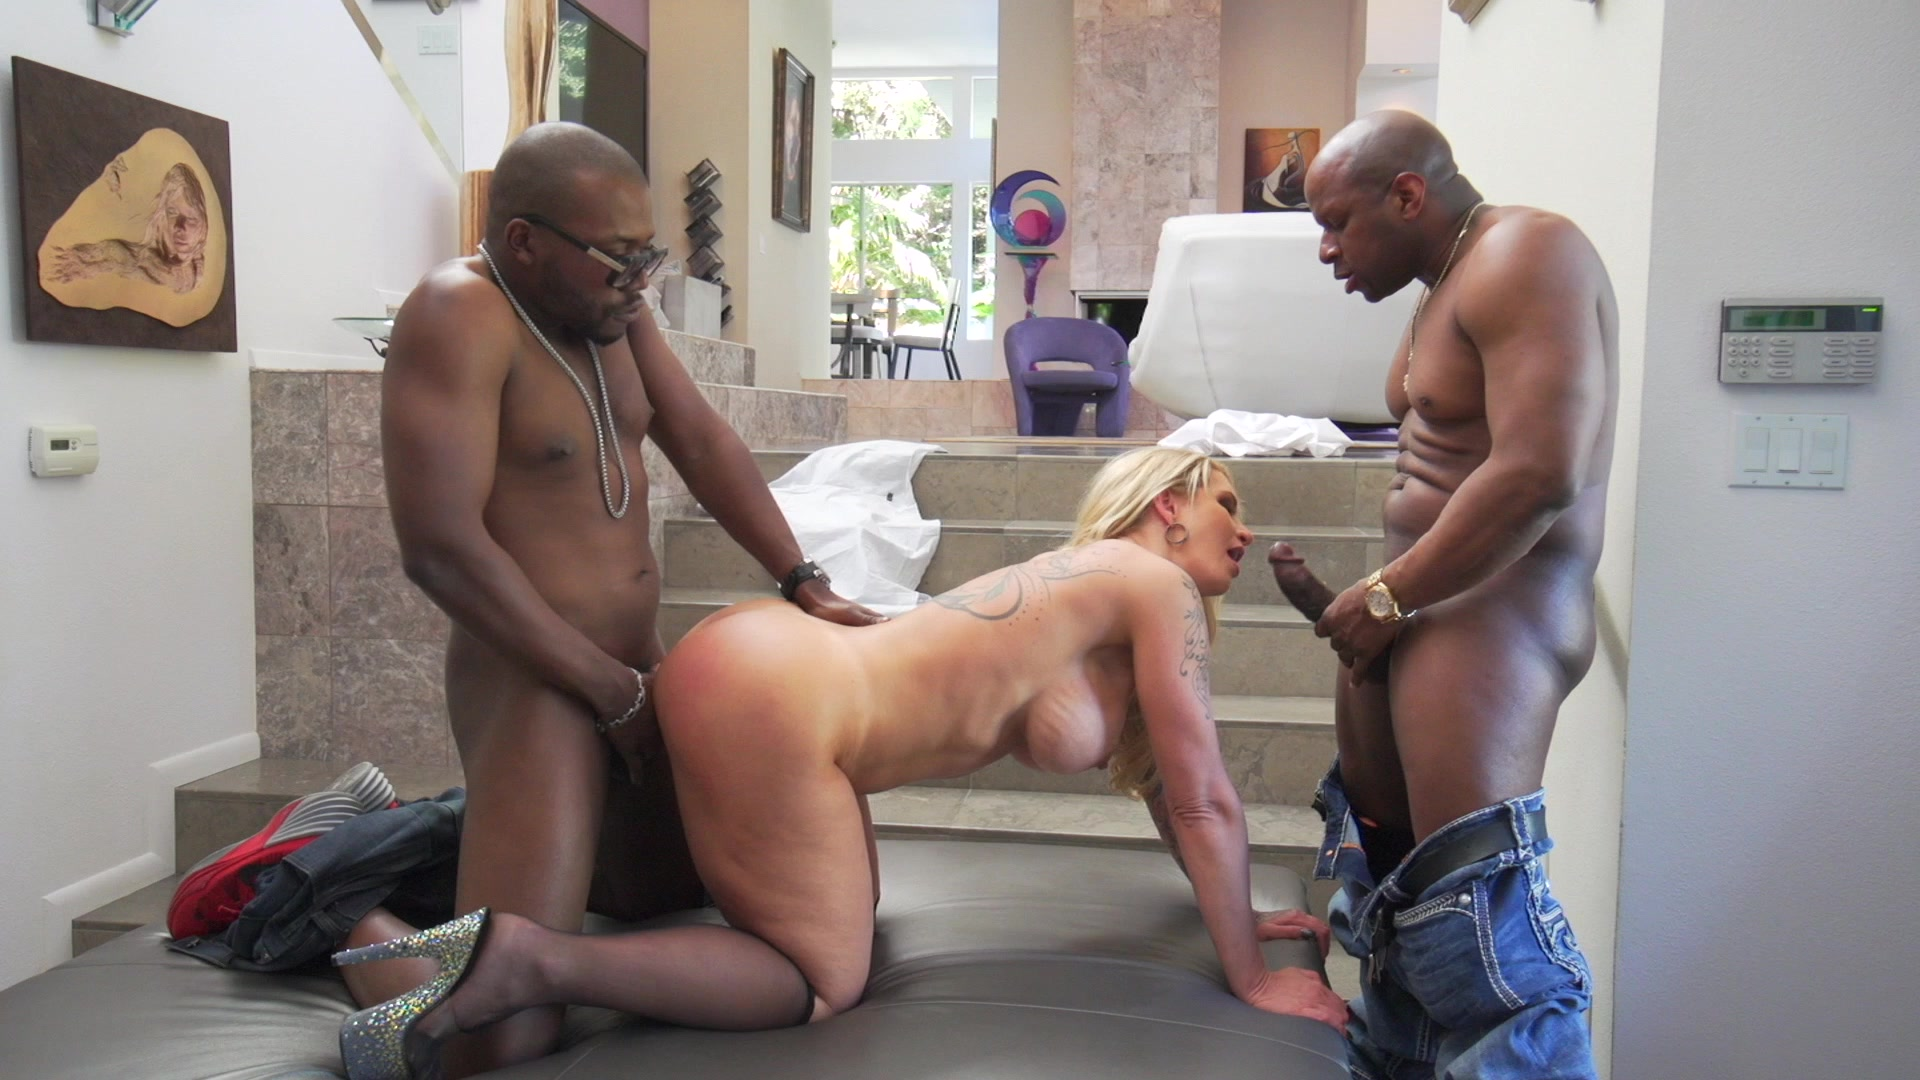 Tattooed Blonde MILF Ryan Conner Takes Two Big Black Cocks at Once Starring:  Ryan Conner